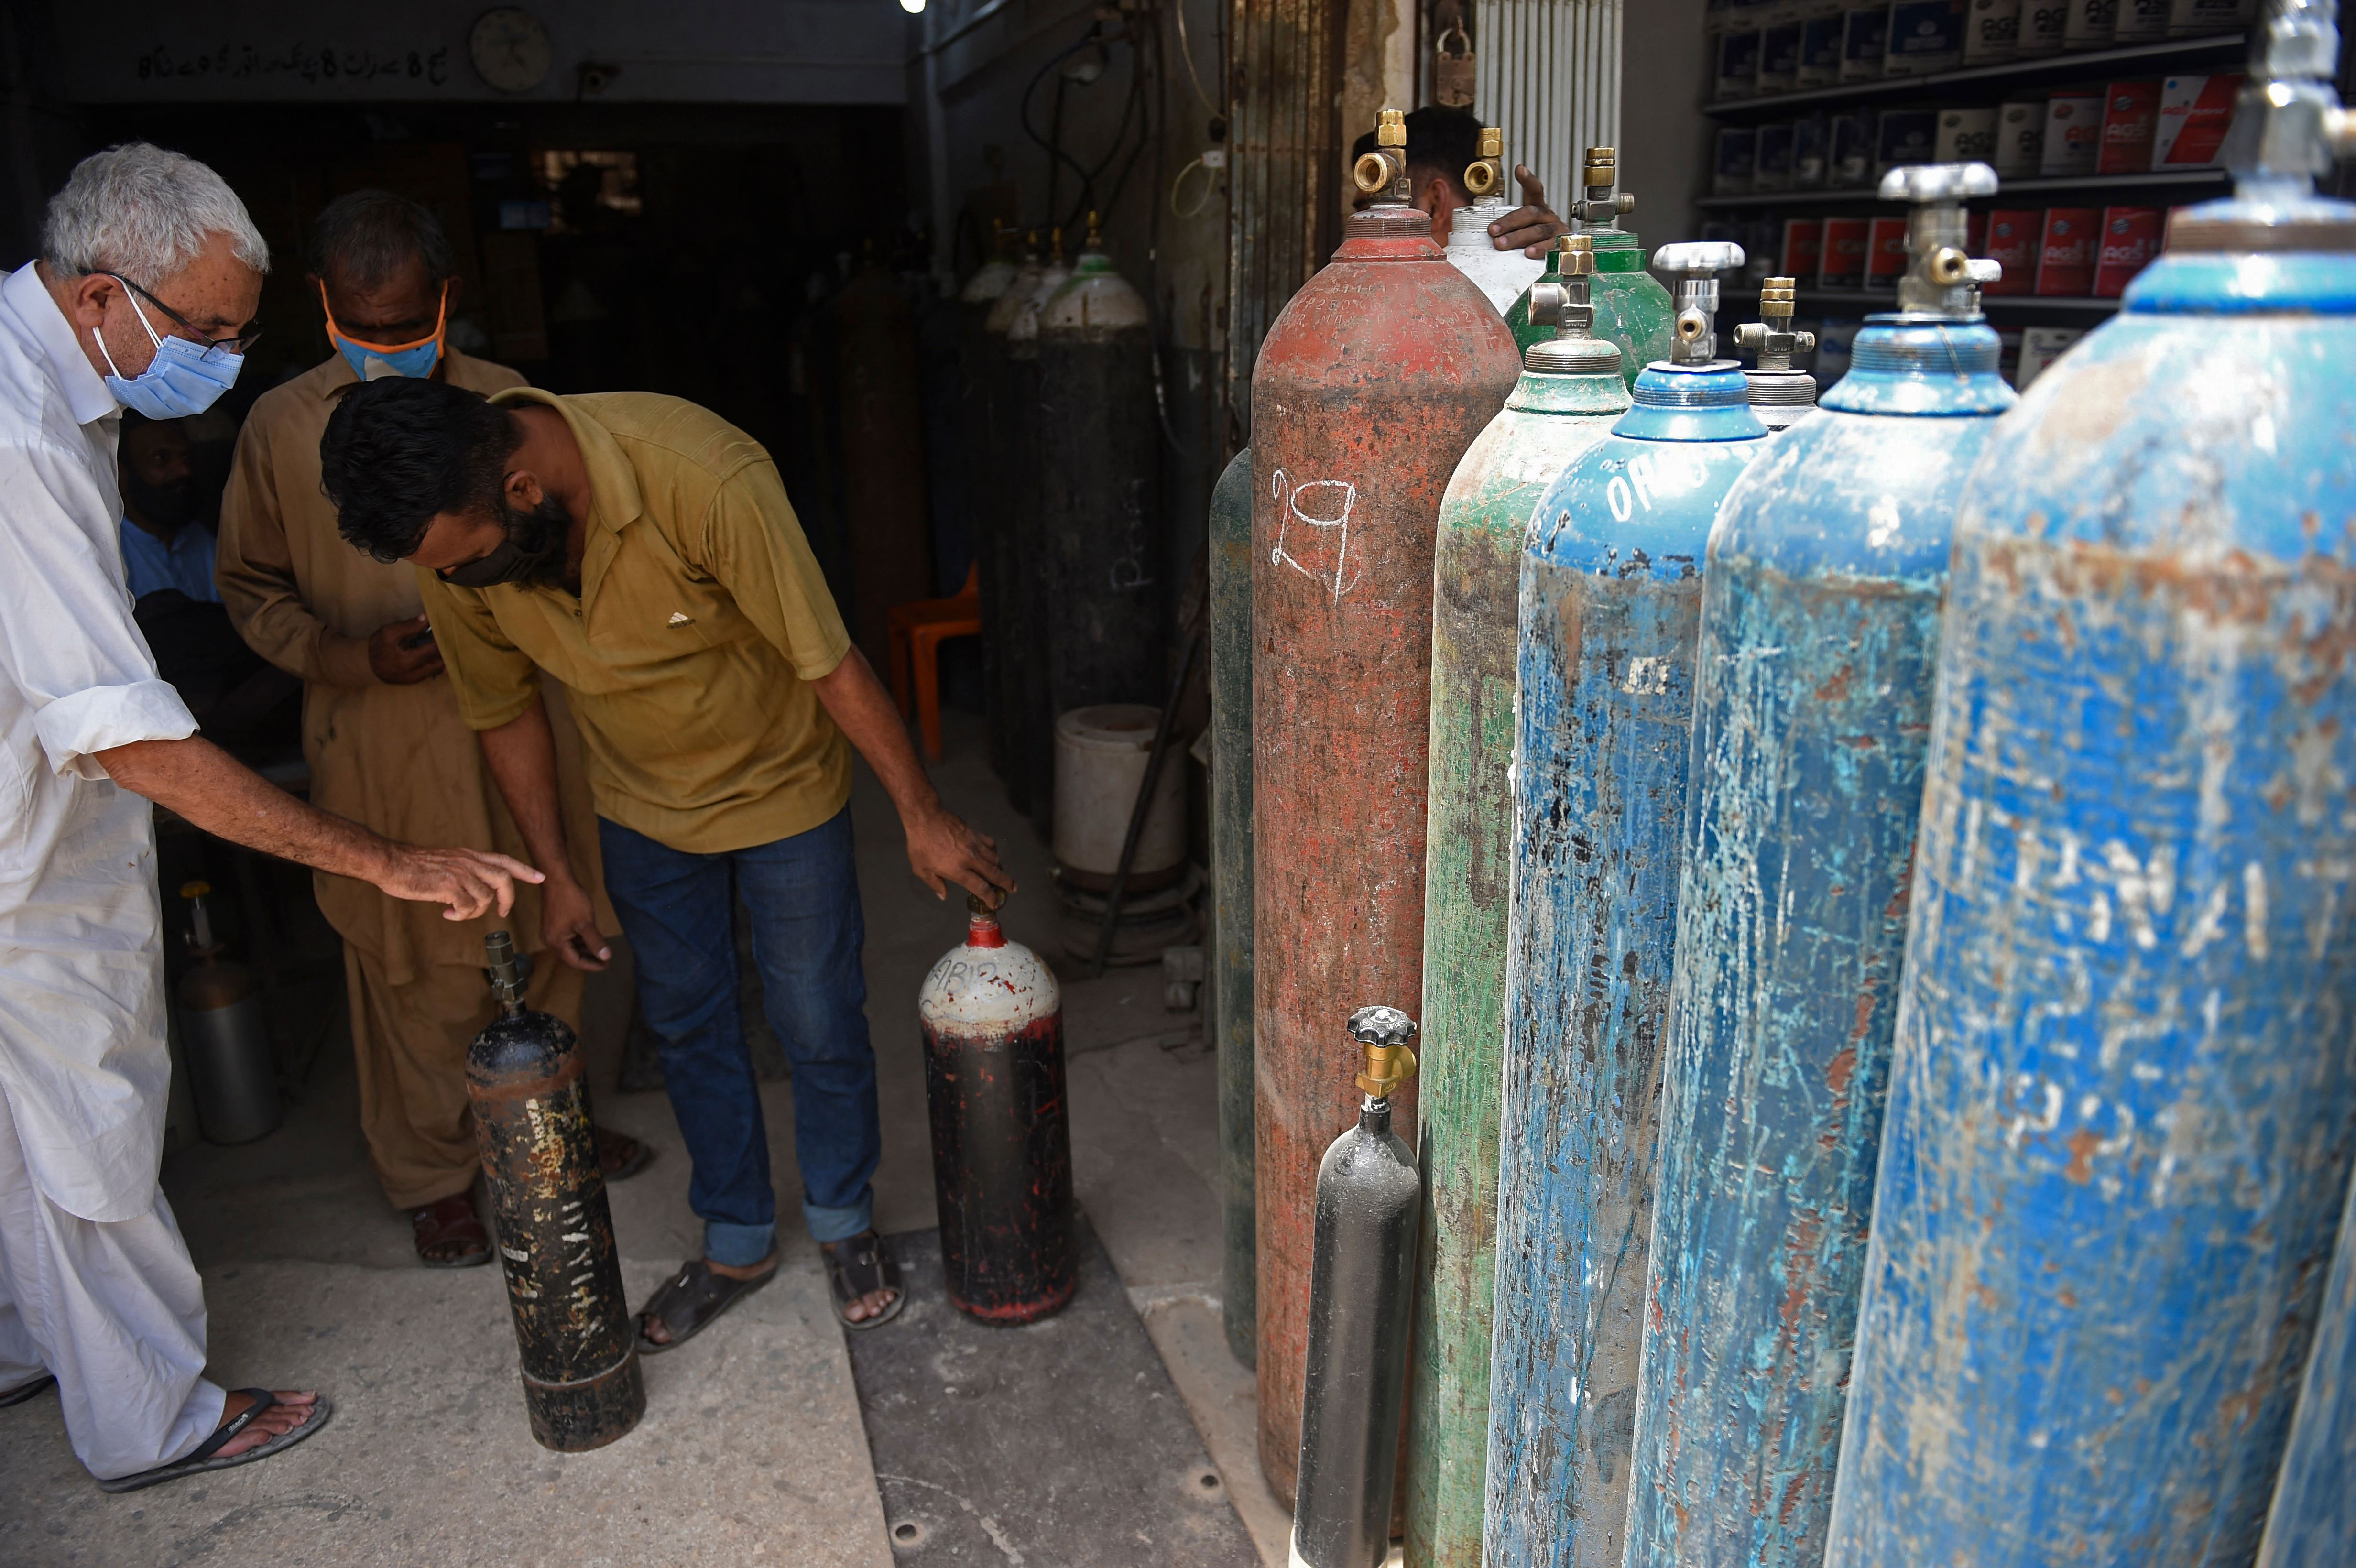 A shopkeeper speaks with a customer before refilling oxygen cylinders for Covid-19 patients in Karachi, Pakistan, on April 26.